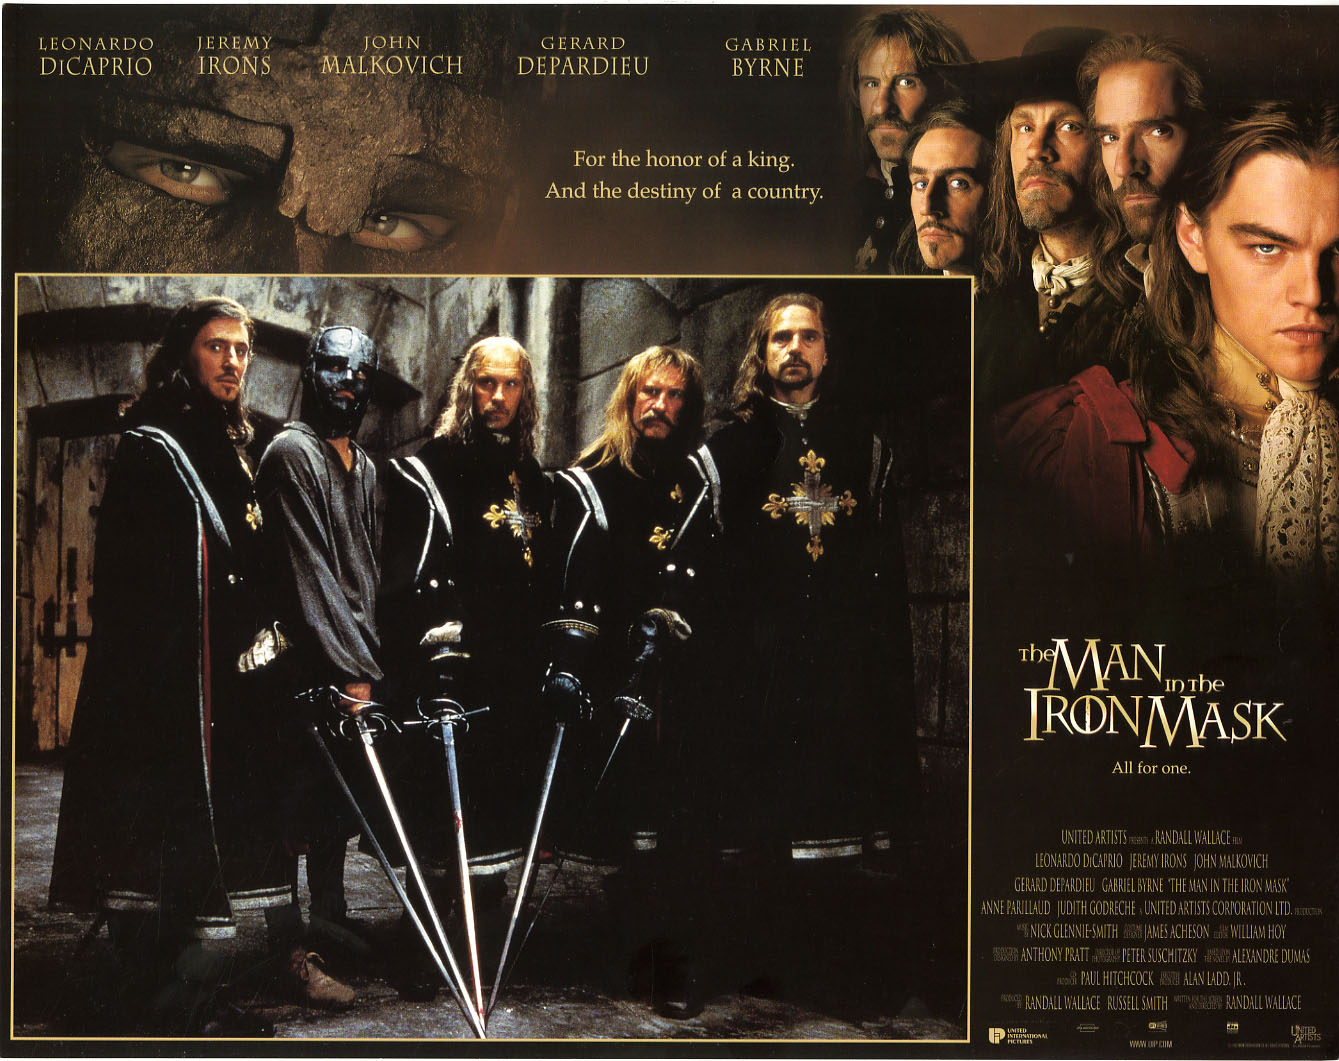 the man in the iron mask Find great deals on ebay for the man in the iron mask and the man in the iron mask vhs shop with confidence.